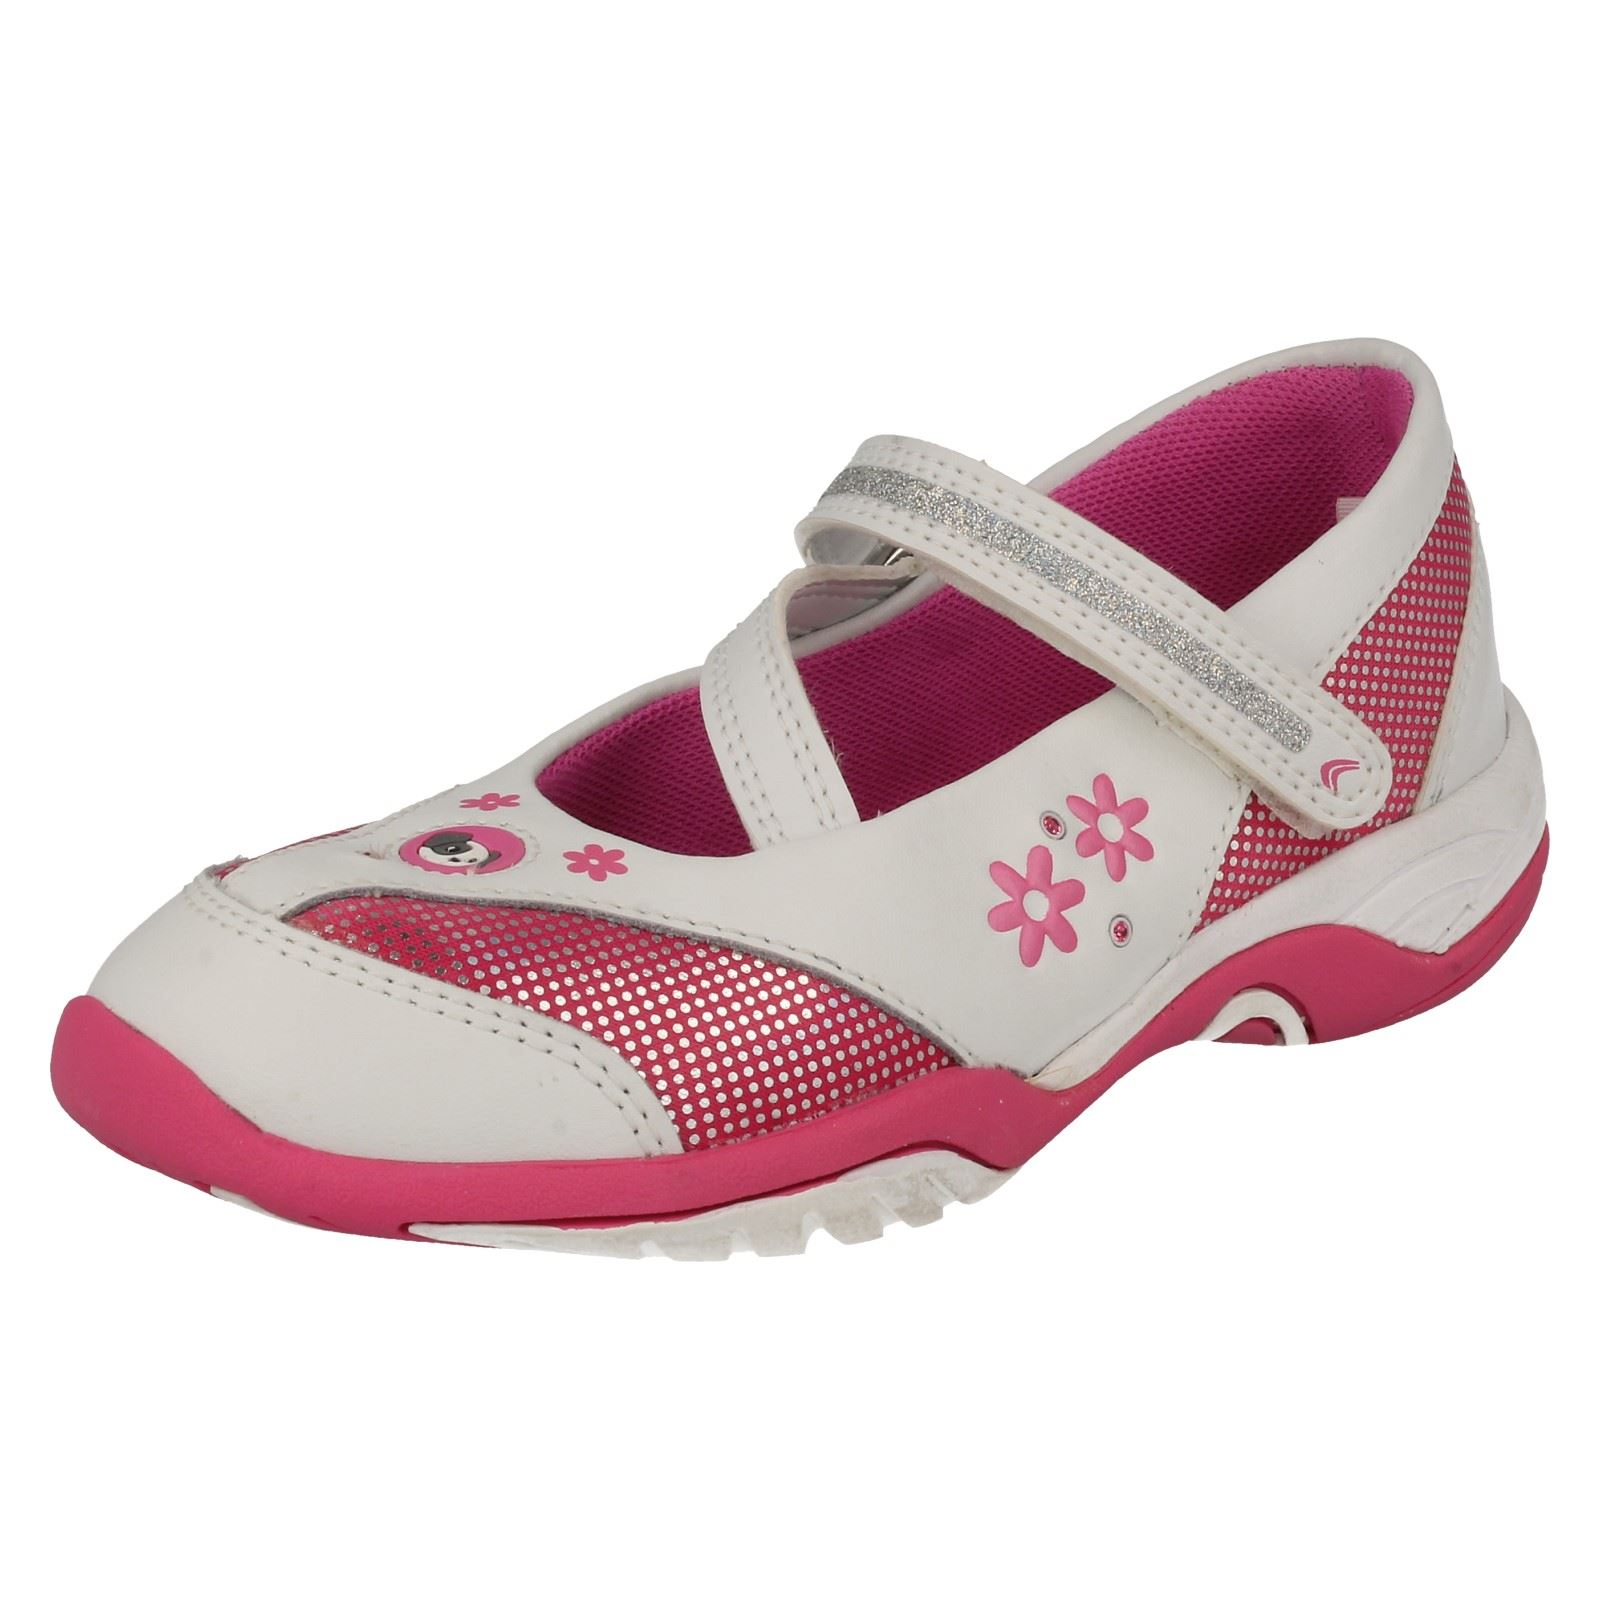 Toys For Trainers : Girls cica by clarks trainer shoes with toys daisy sun